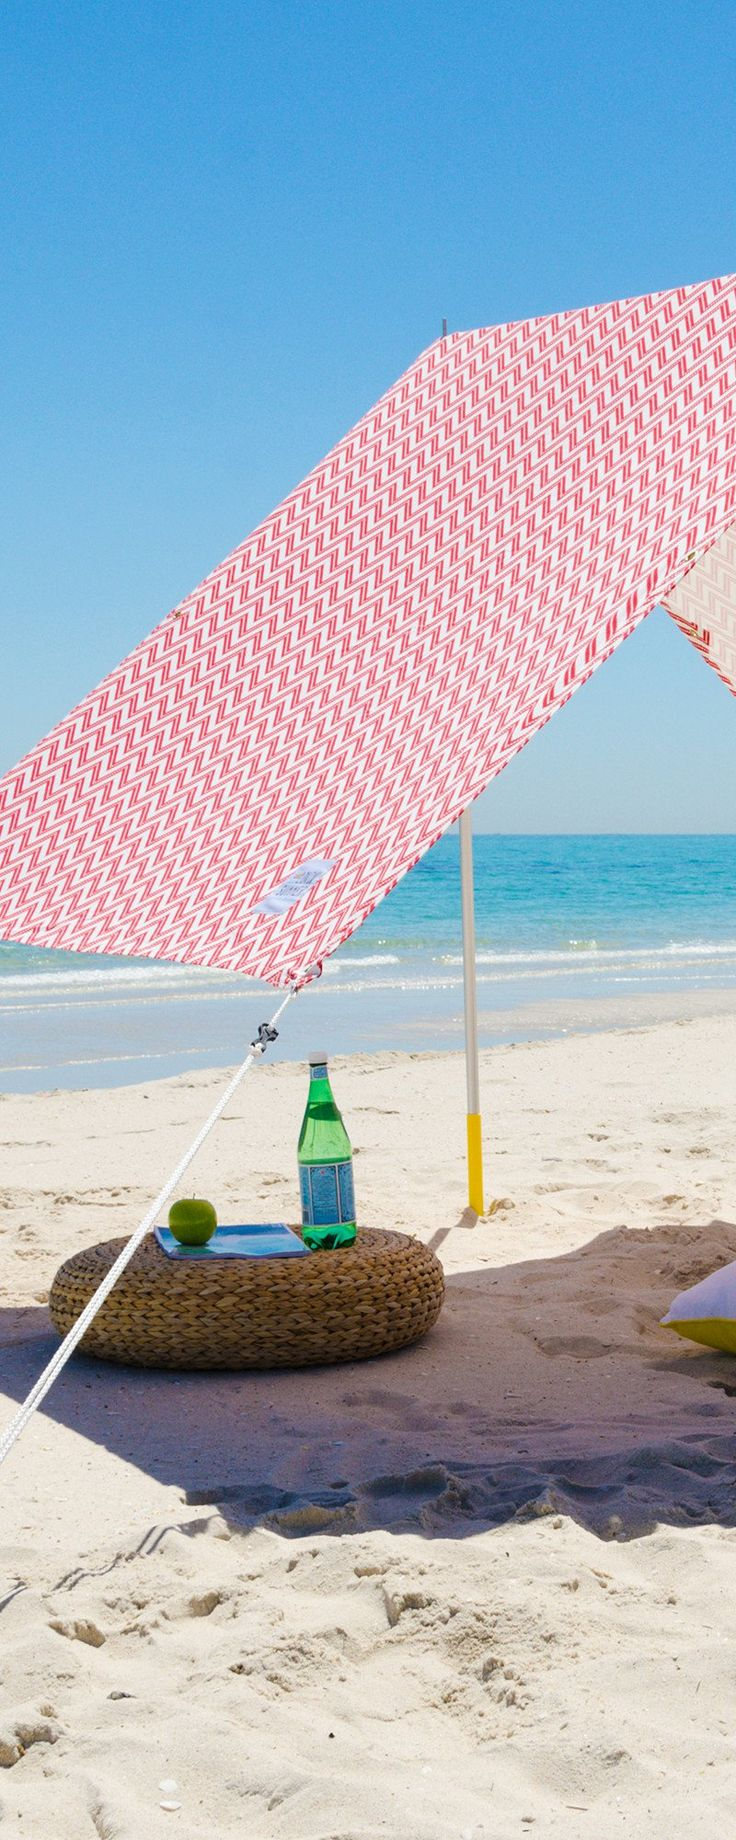 Lovin' Summer creates stylish ways to be outdoors. Their beach tent, discovered by The Grommet, offers UV-protection and keeps the comfort of a summer breeze.